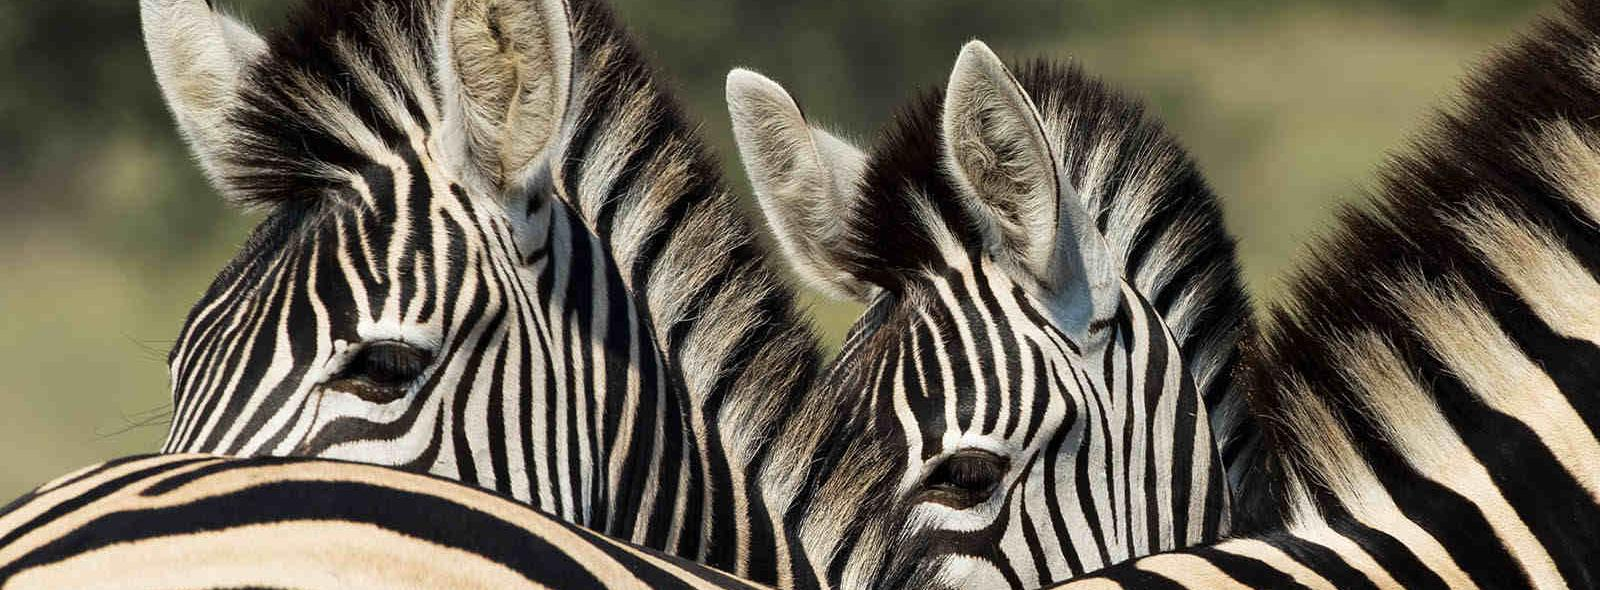 twee zebra's close-up